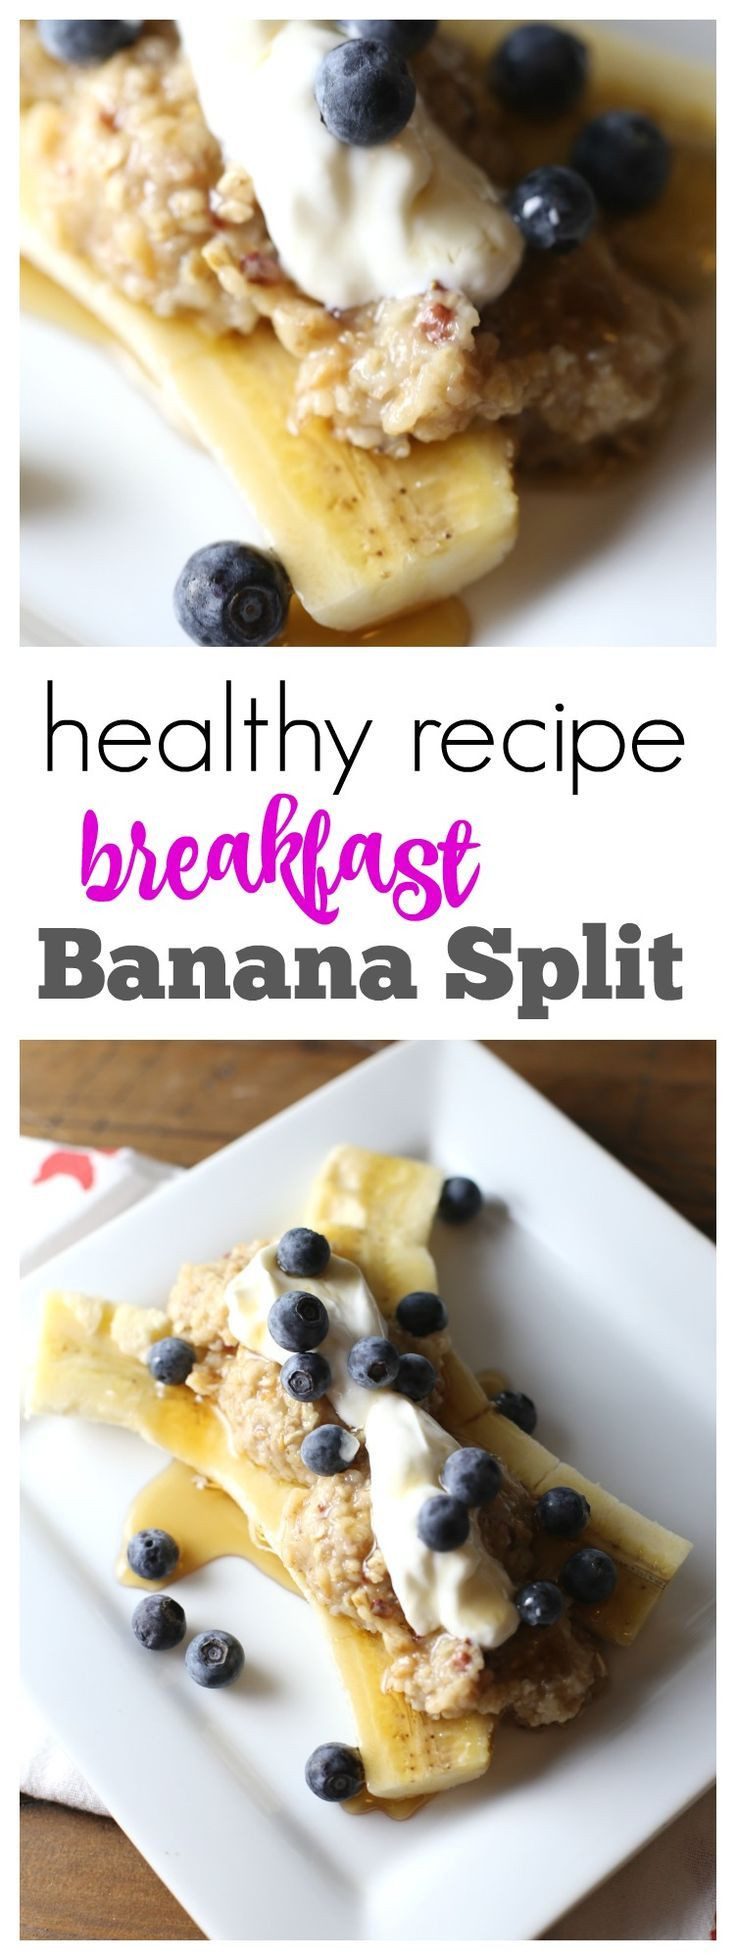 Healthy Banana Recipes For Breakfast  1119 best Fun Food Ideas for Kids images on Pinterest